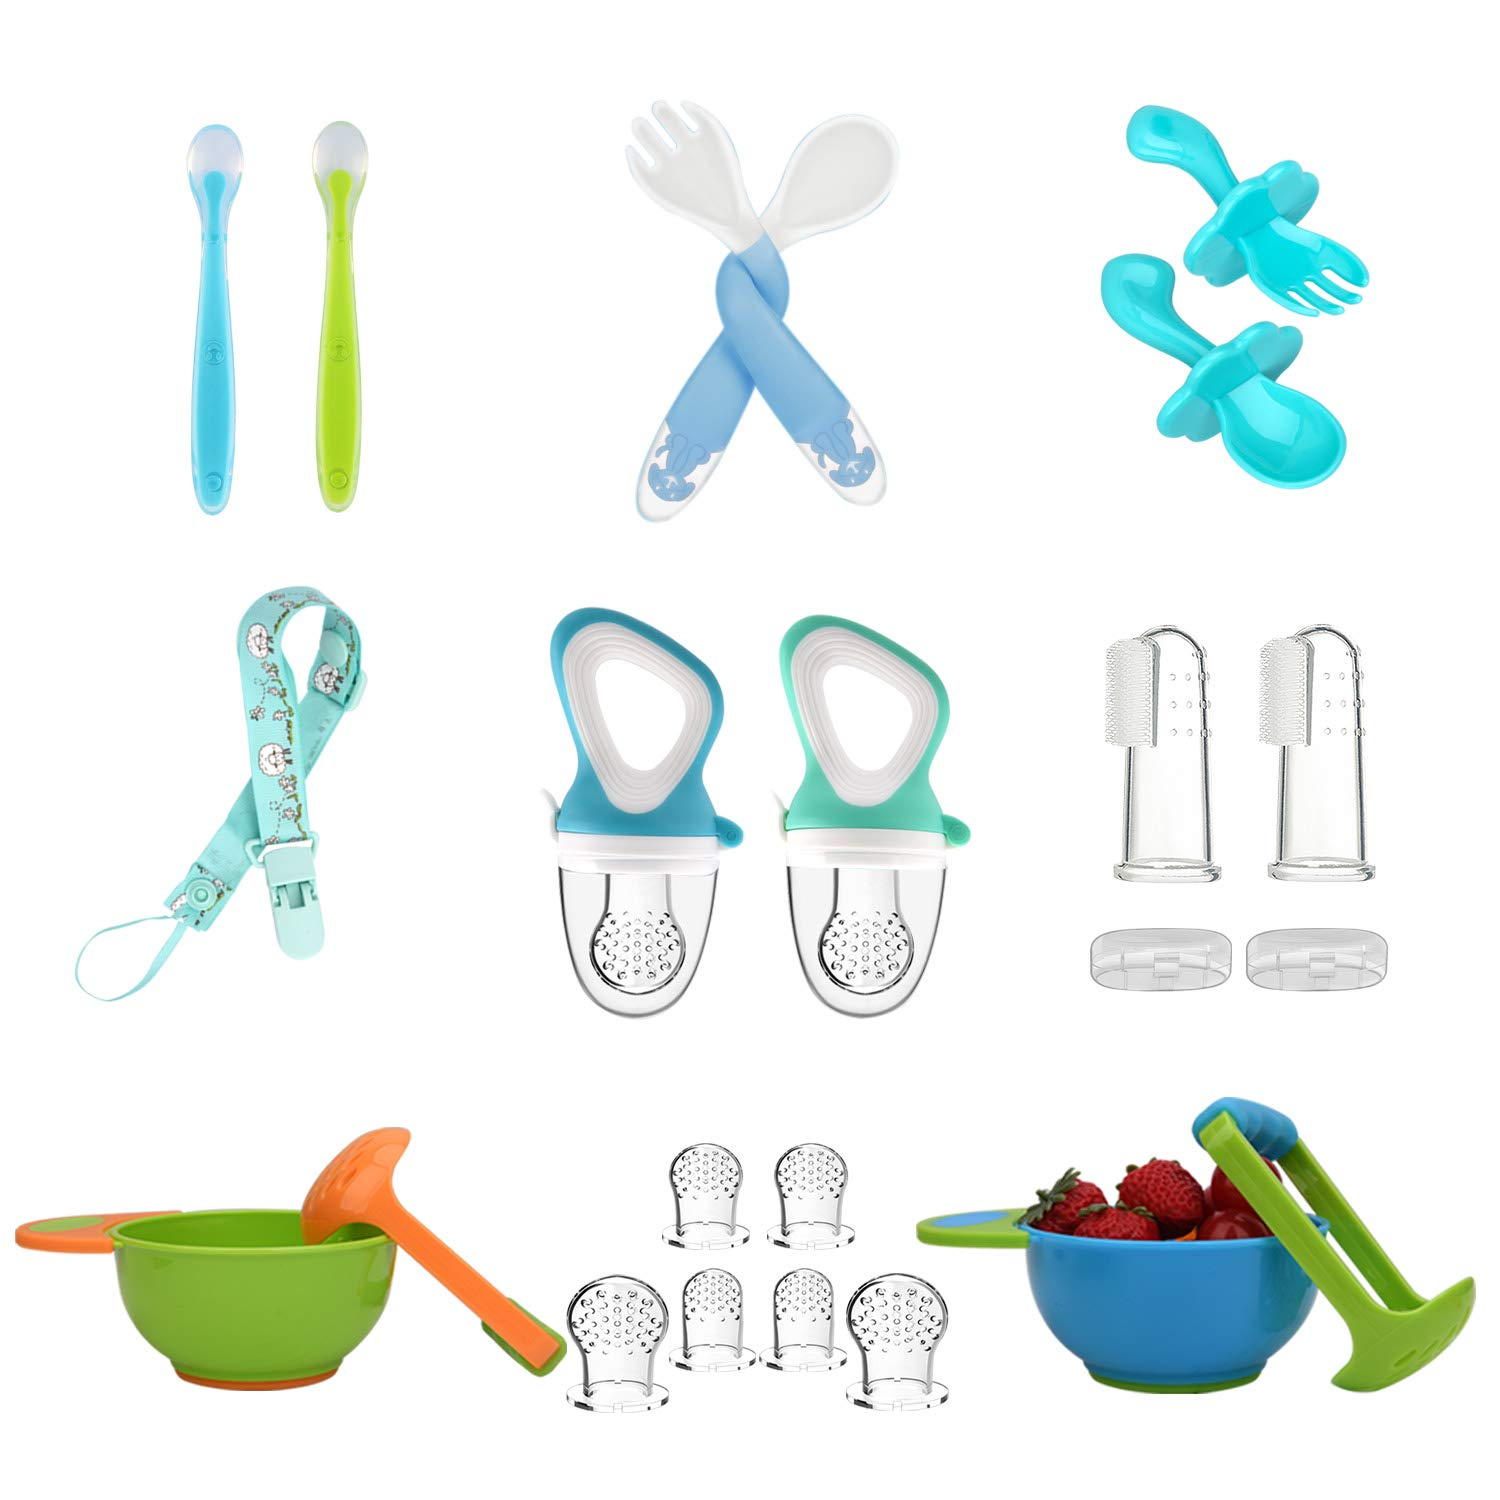 Baby Fruit Feeder Pacifier (2 Pcs) with 6 Silicone Pacifiers Mash and Serve Bowl (2pack) with 6 Baby Spoons Pacifier Clip Baby Finger Toothbrush Infant Fruit Teething Toy Baby Feeding Set